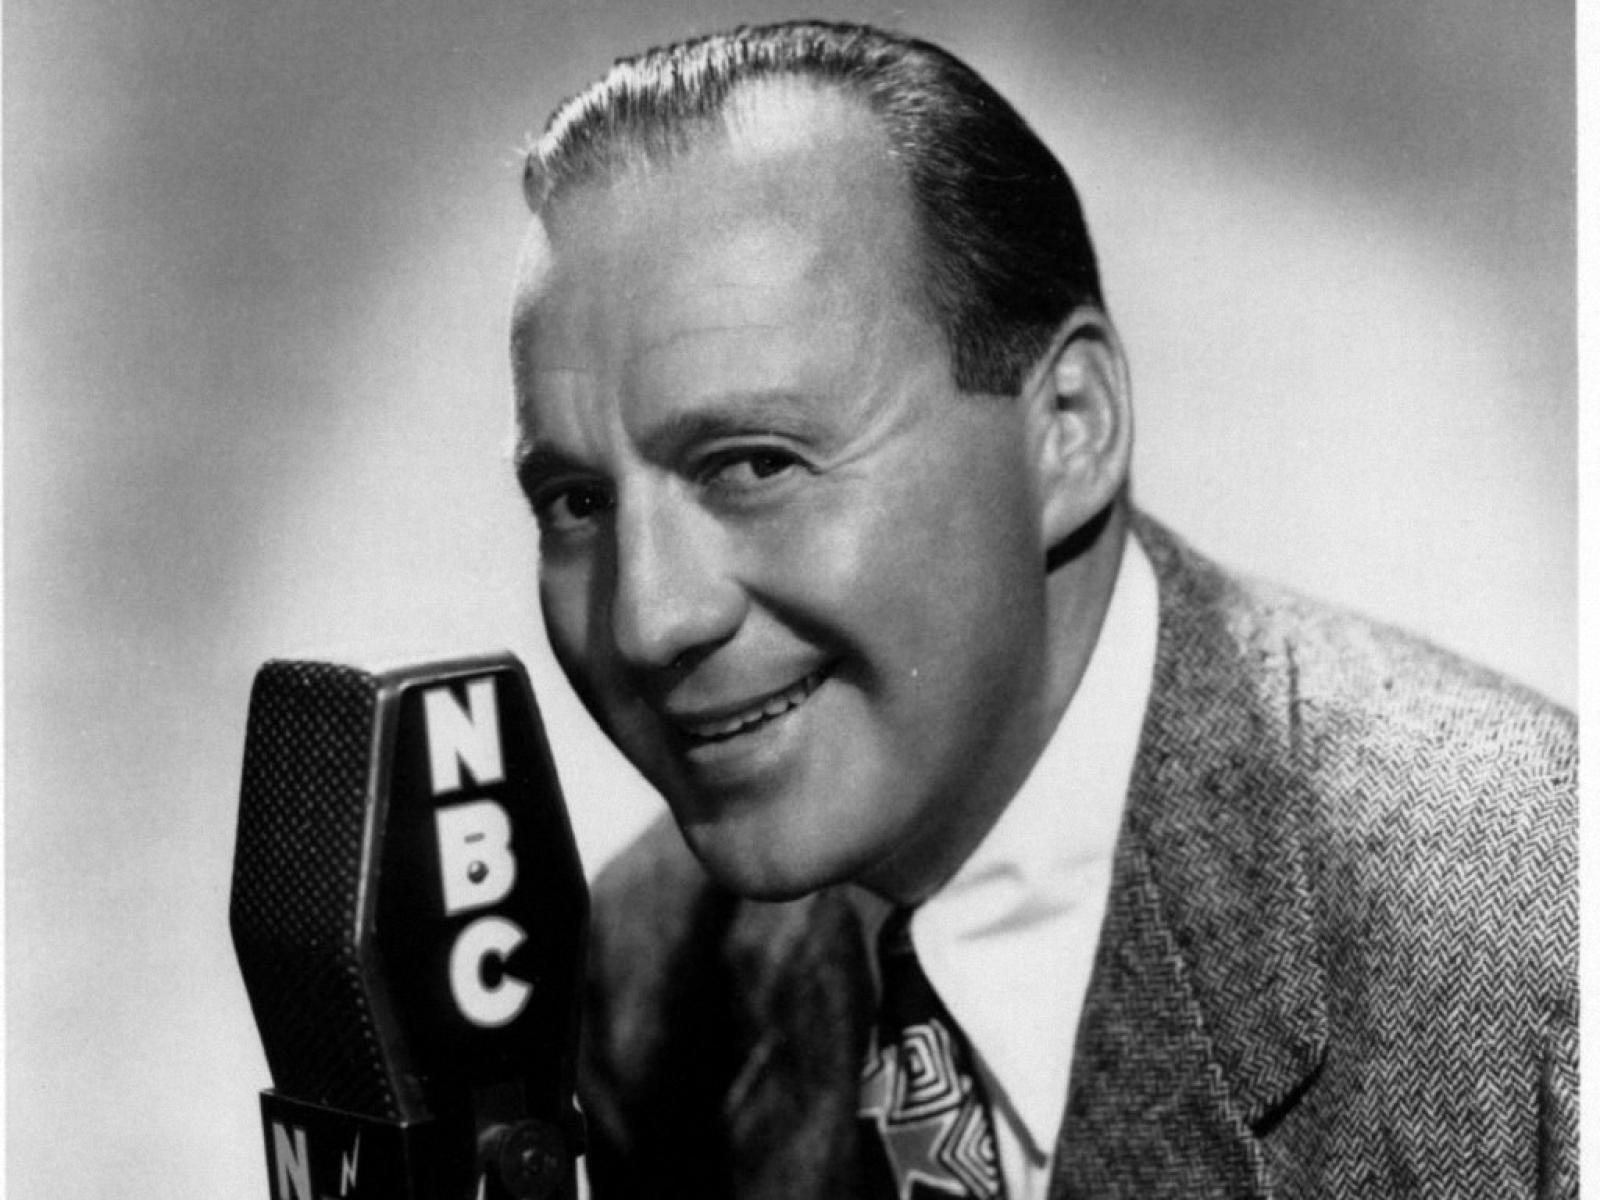 jack benny wikijack benny mel blanc, jack benny and mary livingston, jack benny height, jack benny program, jack benny, jack benny show, jack benny youtube, jack benny wiki, jack benny biography, jack benny lynn, jack benny radio show, jack benny quotes, jack benny middle school, jack benny net worth, jack benny gay, jack benny movies, jack benny violin, jack benny show youtube, jack benny jokes, jack benny 39